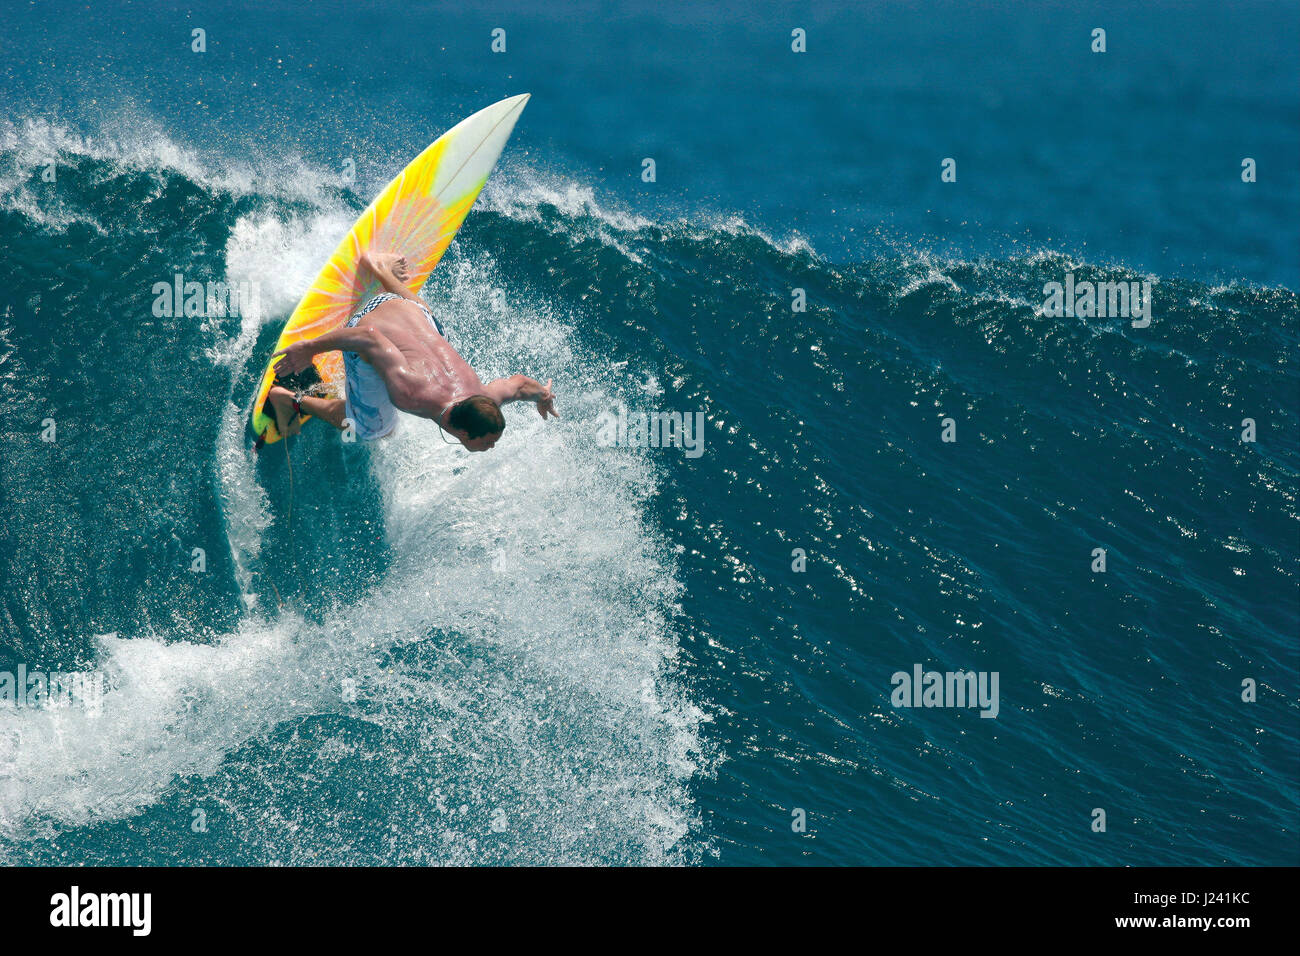 A surfer executes a radical backhand move on a beautiful blue ocean wave. - Stock Image